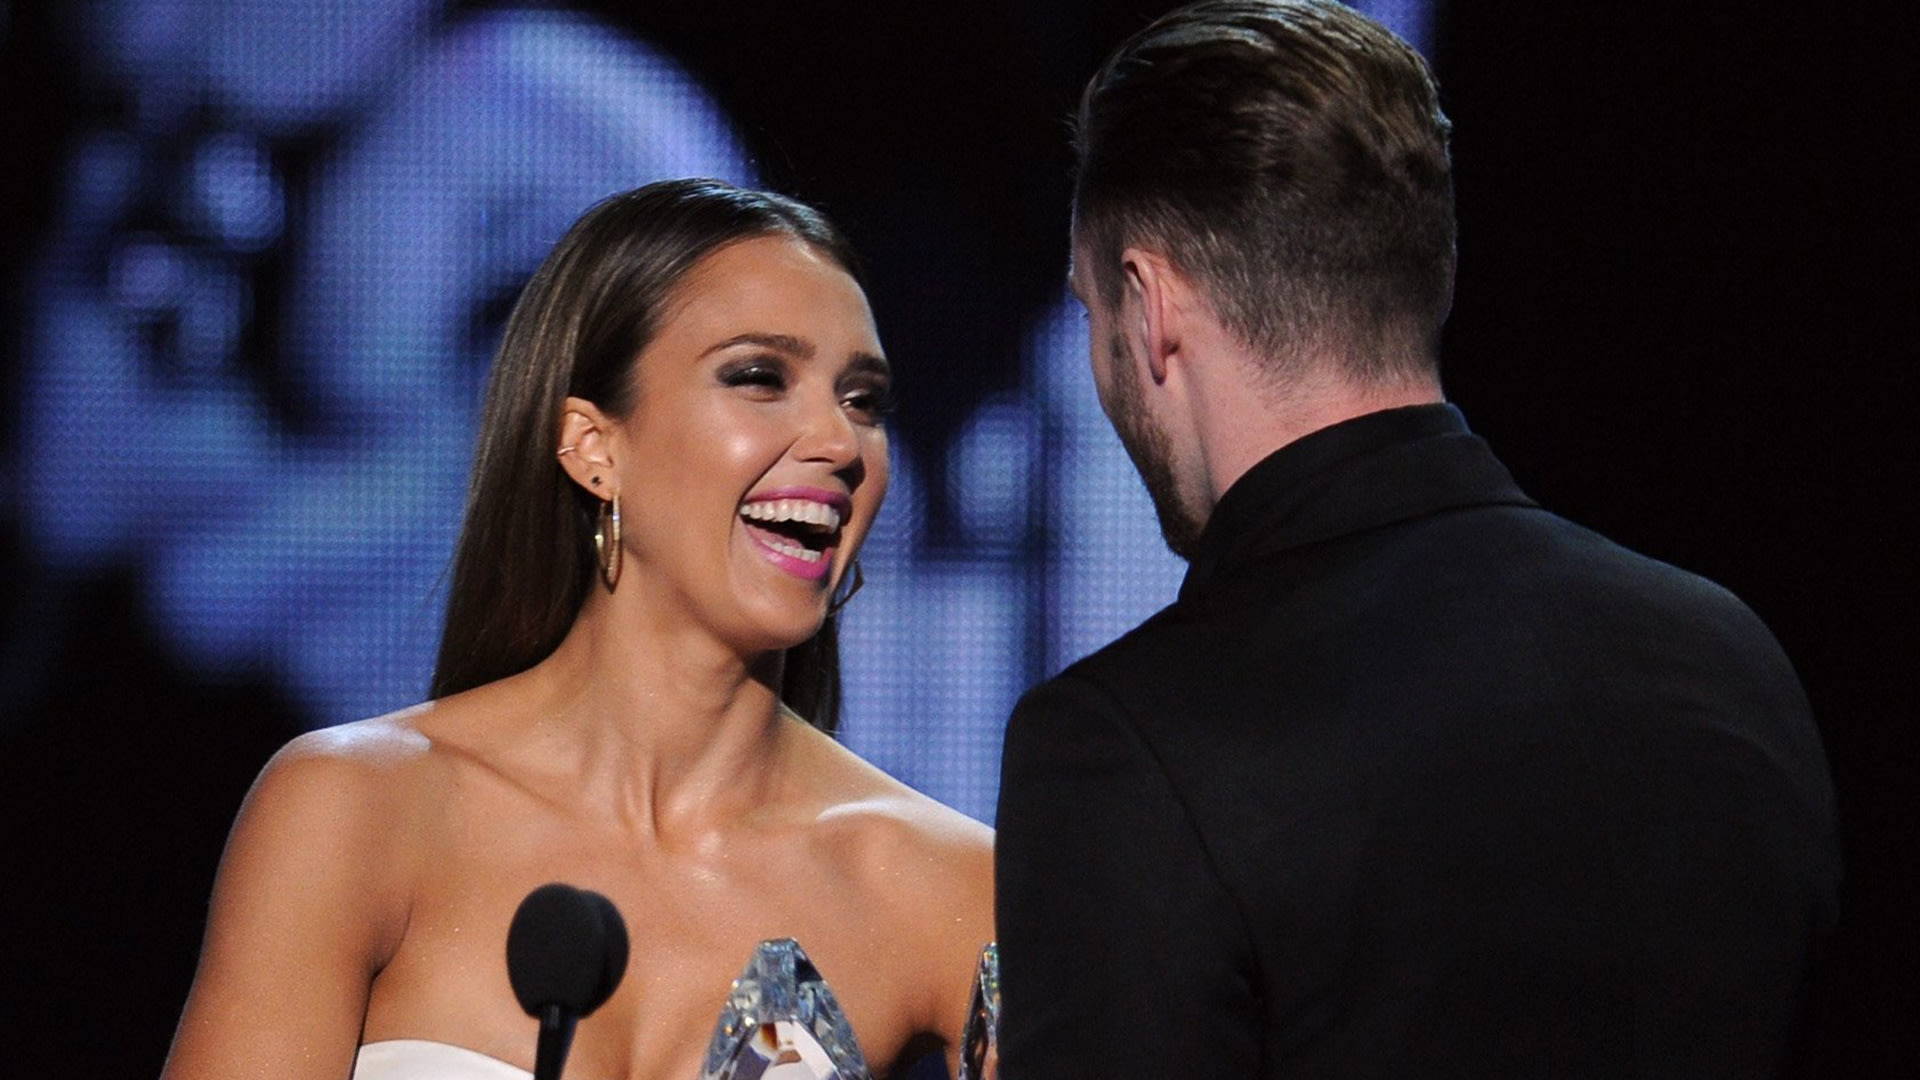 Image: The 40th Annual People's Choice Awards - Show